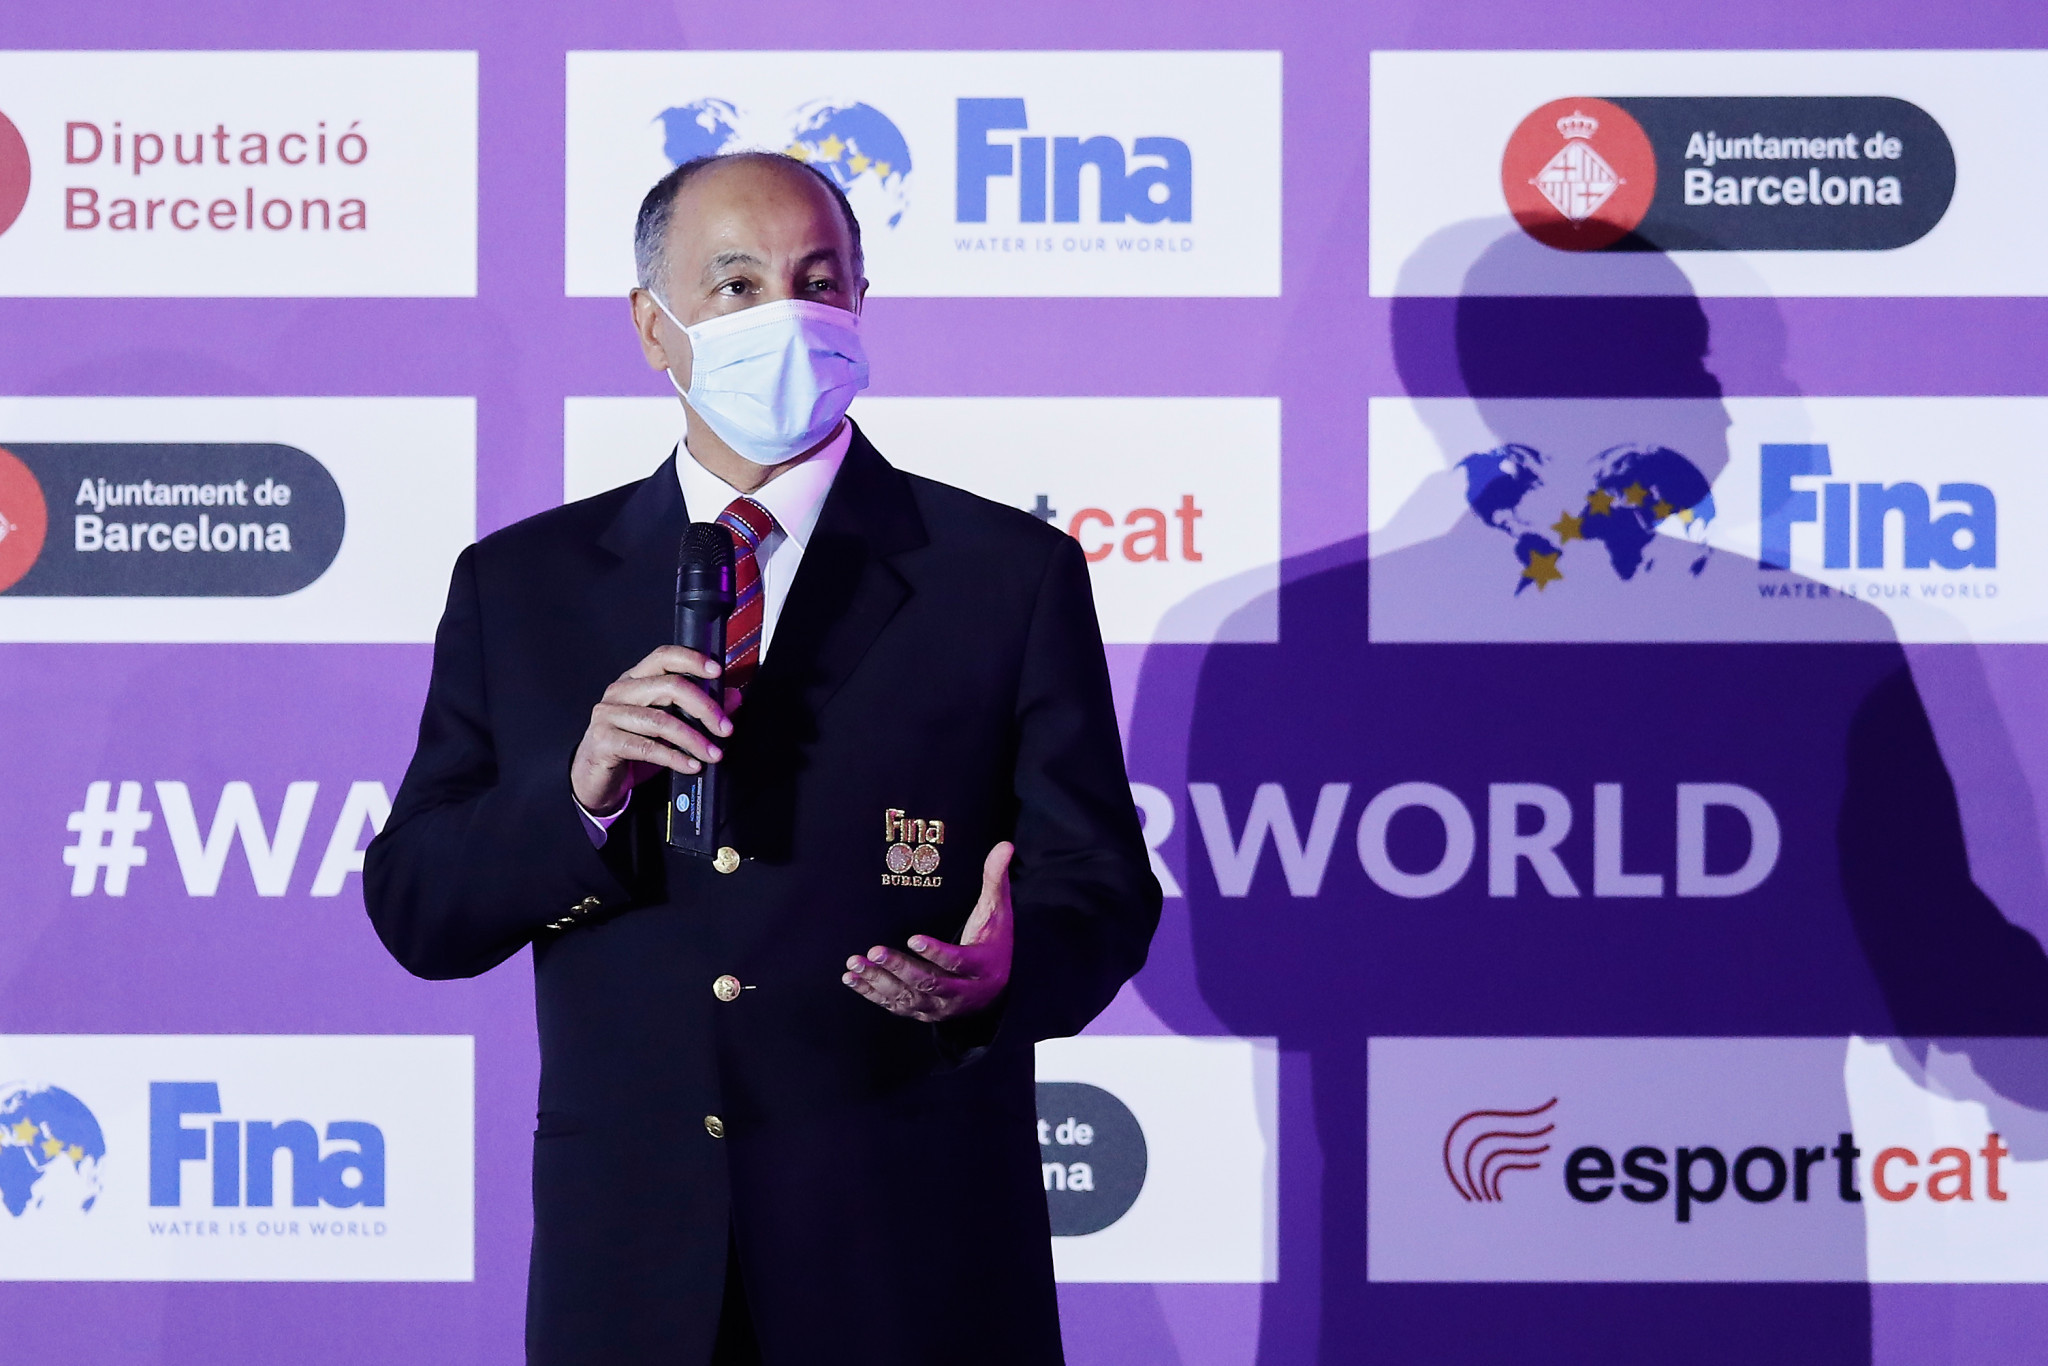 New FINA President hopeful of collaborating with ISL and International Swimmers' Alliance